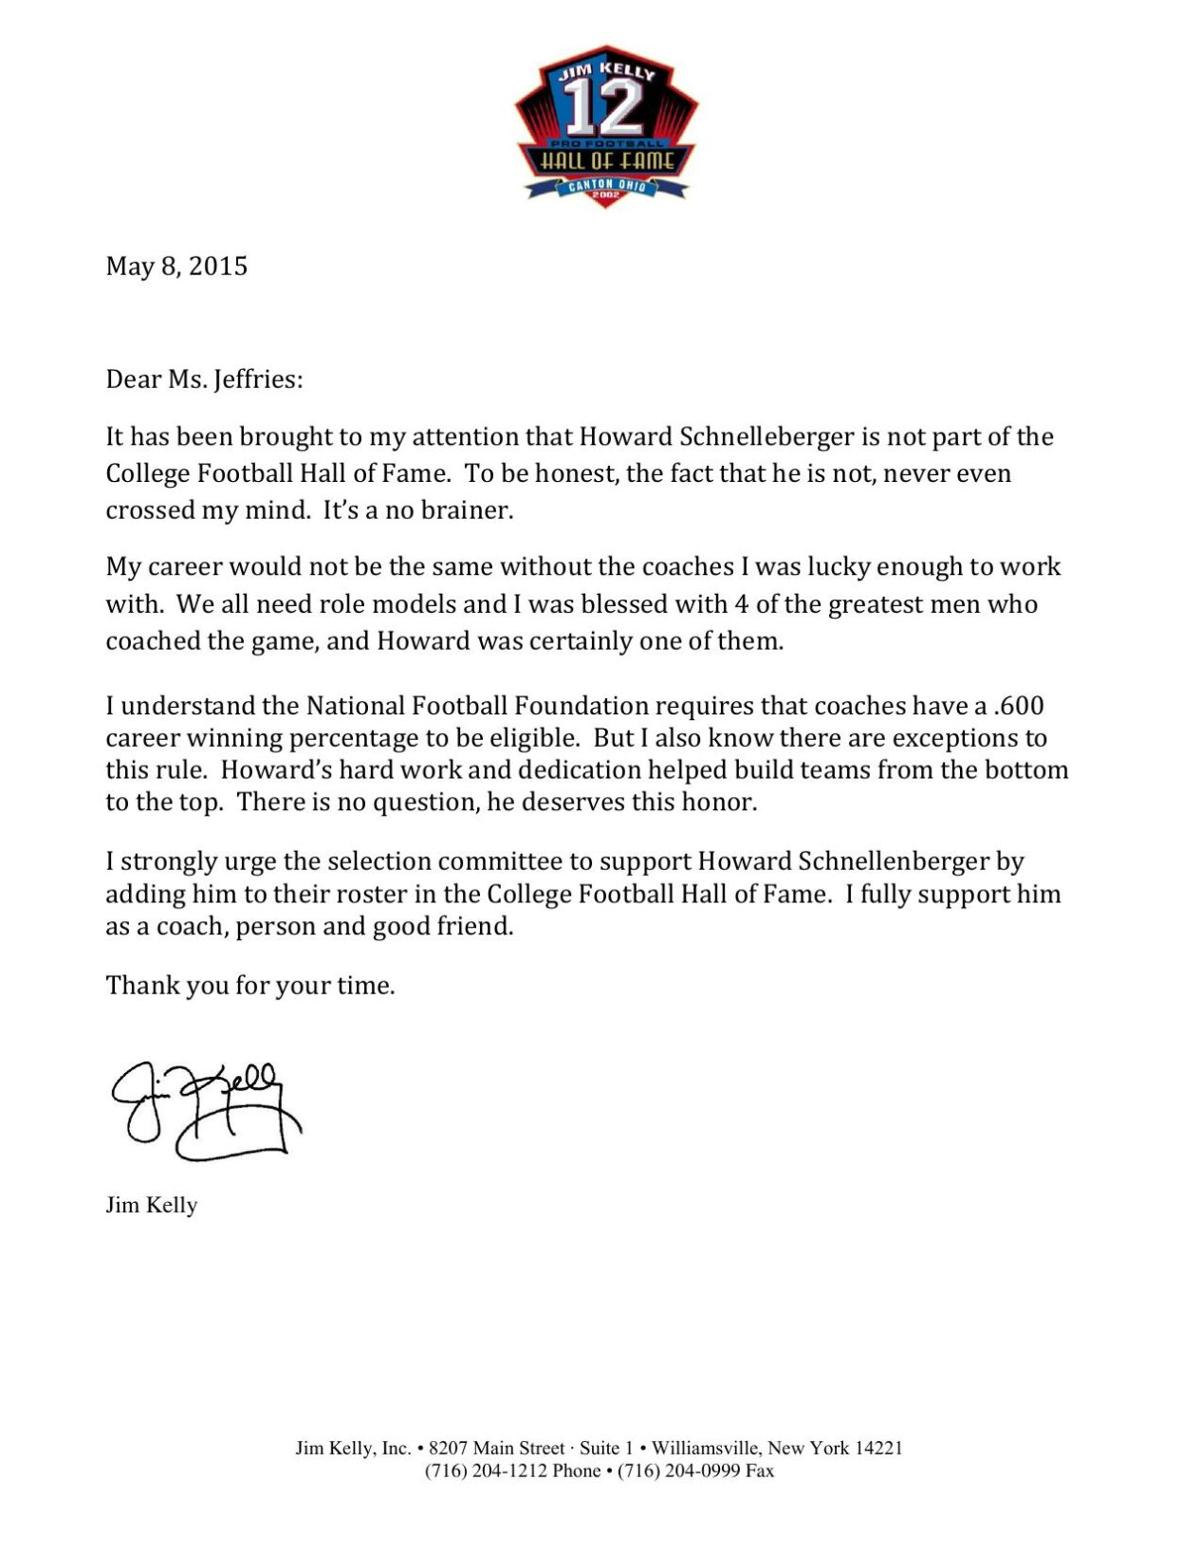 Jim Kelly's letter pushing for Howard Schnellenberger's Hall of Fame nomination